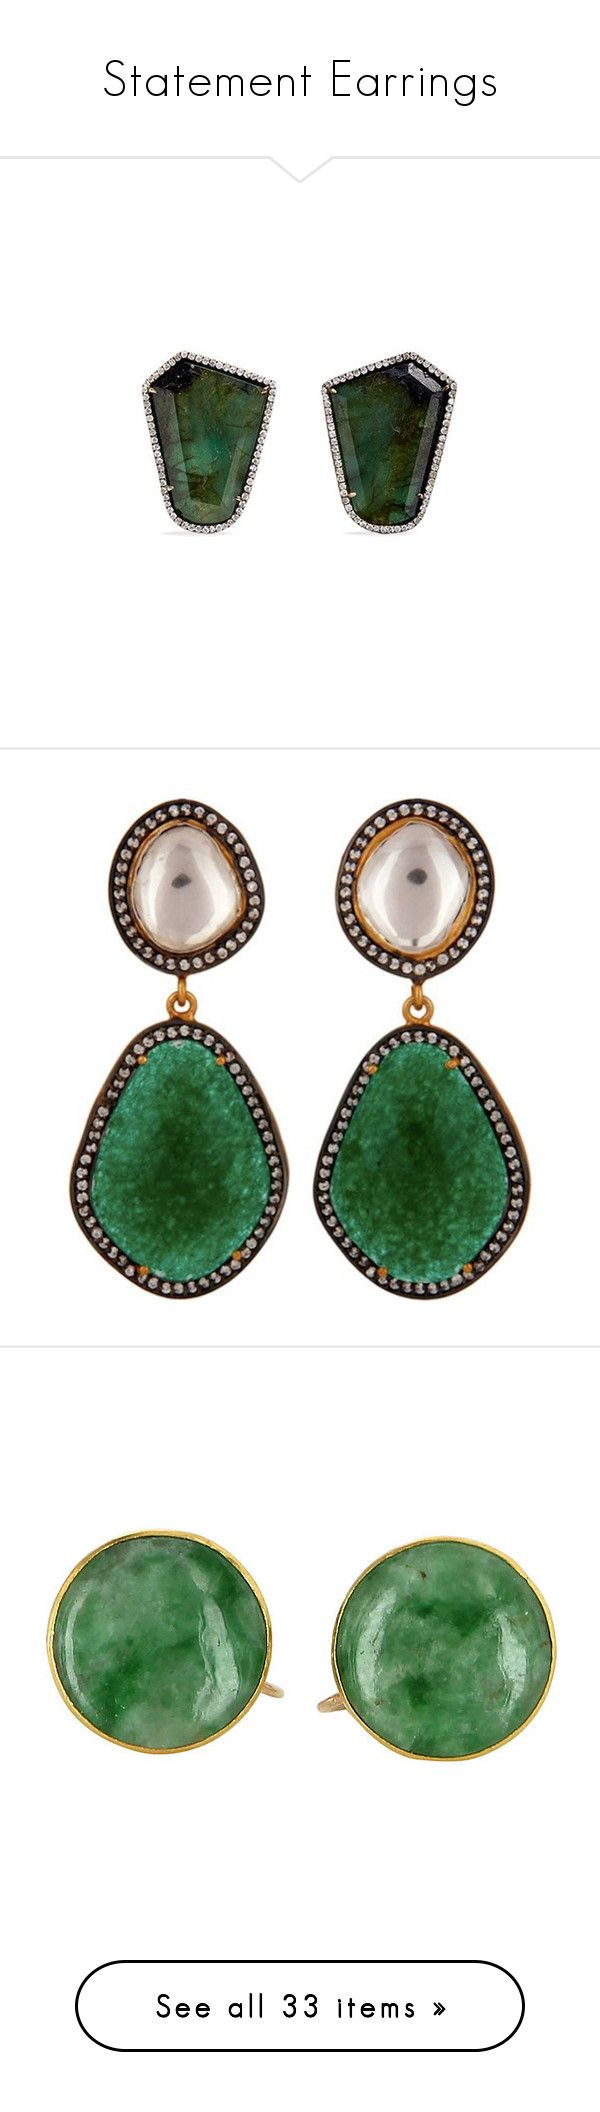 """Statement Earrings"" by nightmaregrl ❤ liked on Polyvore featuring jewelry, earrings, metallic, diamond jewellery, 18k white gold earrings, white gold diamond earrings, white gold jewellery, white gold diamond jewelry, green aventurine jewelry and aventurine jewelry"